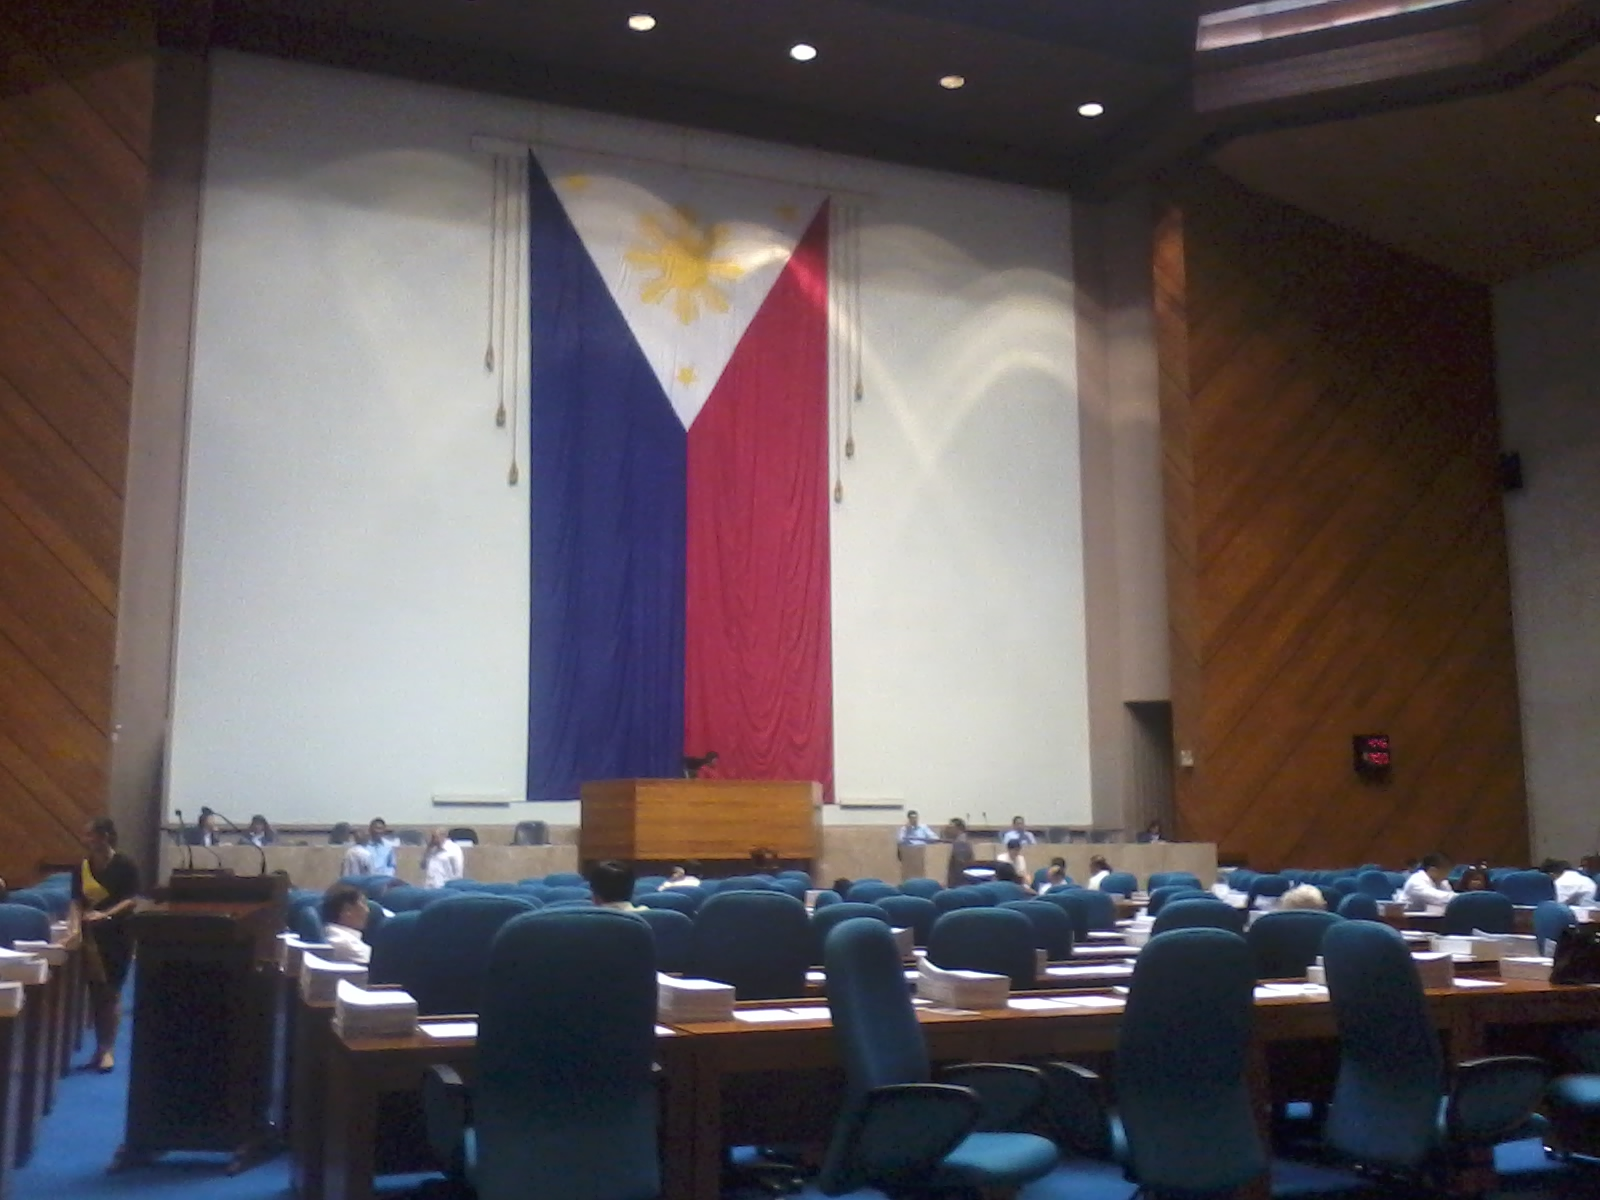 AGENDA. It remains uncertain when the RH bill will be discussed in the Lower House. File photo.